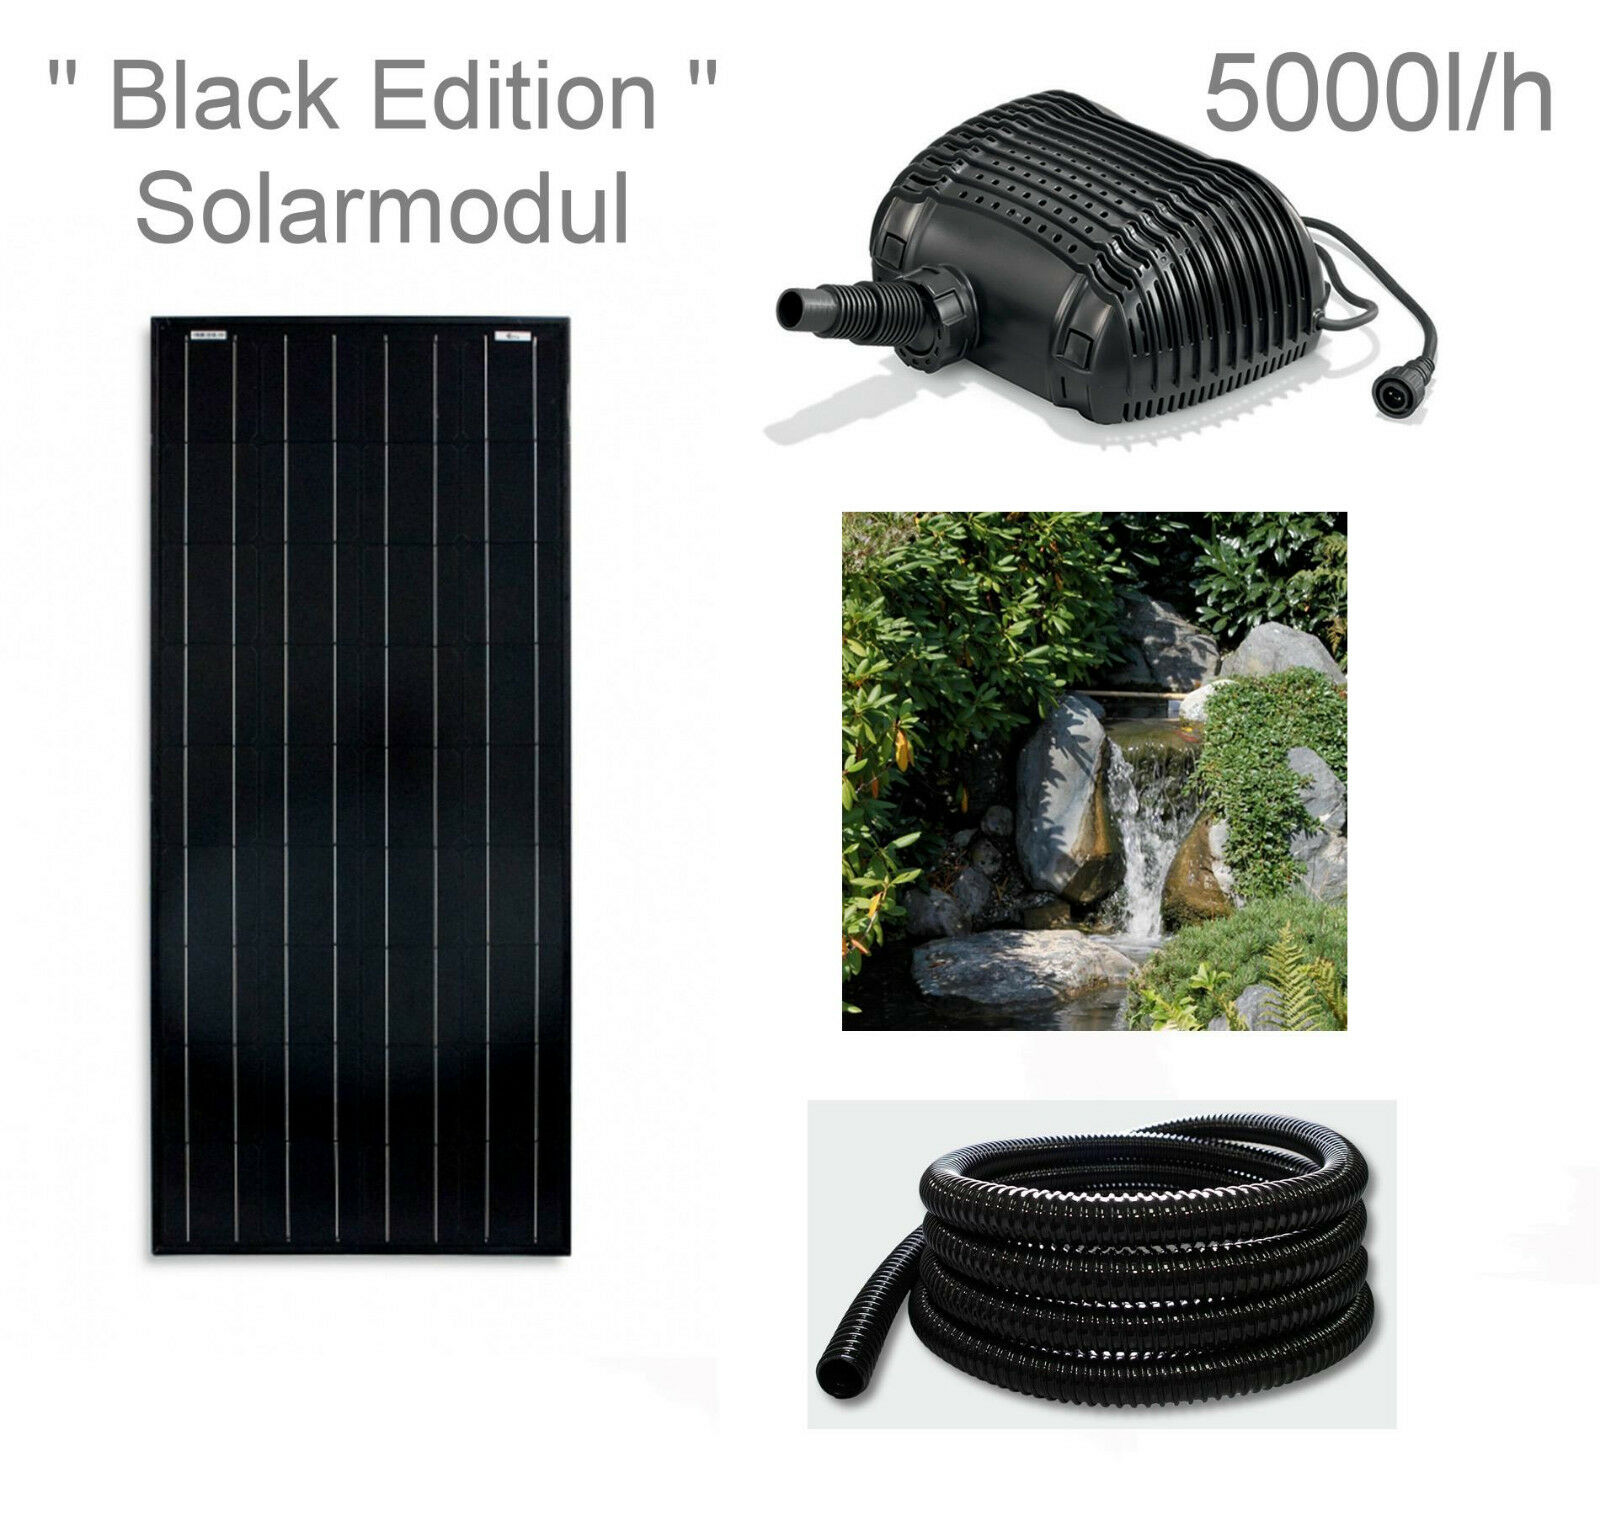 100w solar teichpumpe bachlaufpumpe filter tauch pumpe. Black Bedroom Furniture Sets. Home Design Ideas